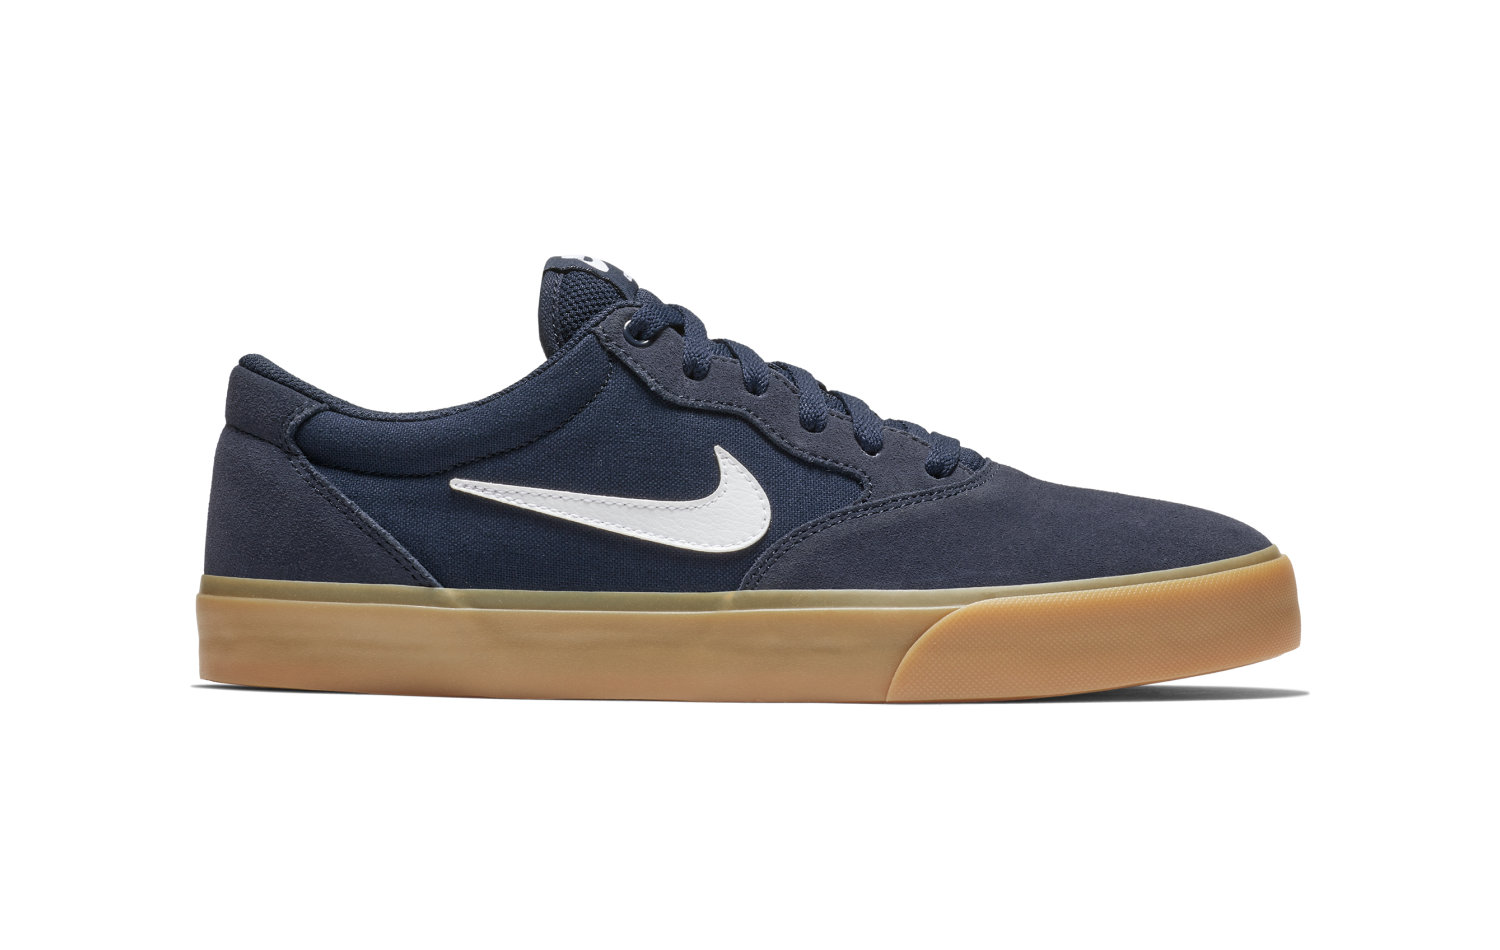 Nike SB Chron Slr (CD6278-400)